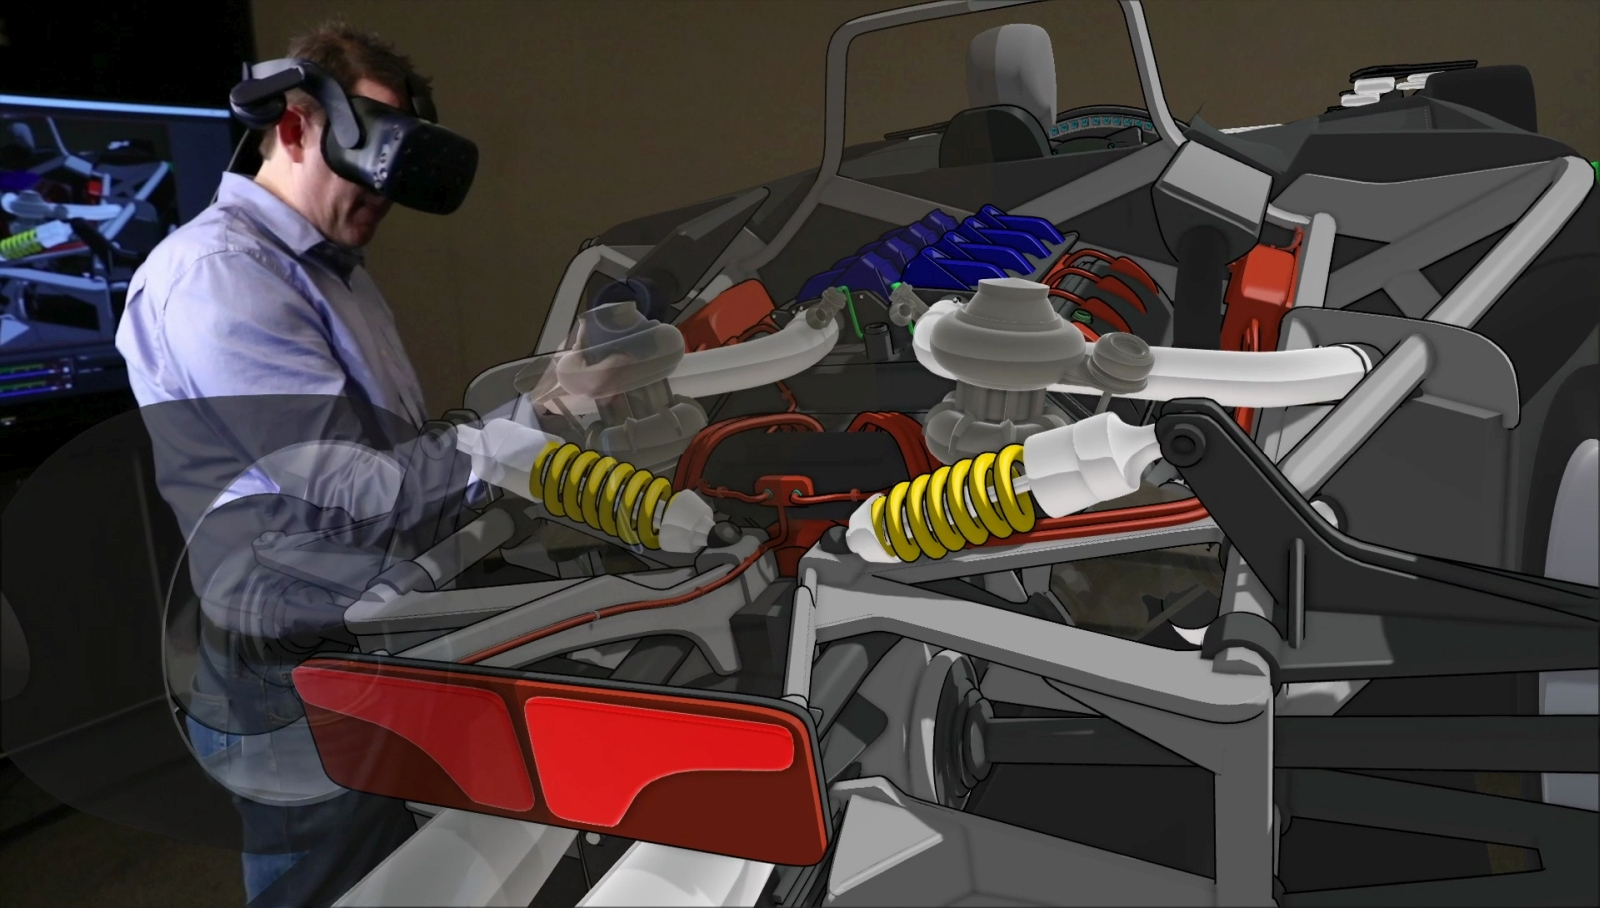 Ford is the first automaker to work with Gravity Sketch – a 3D virtual reality tool that enables designers to come up with more human-centric designs